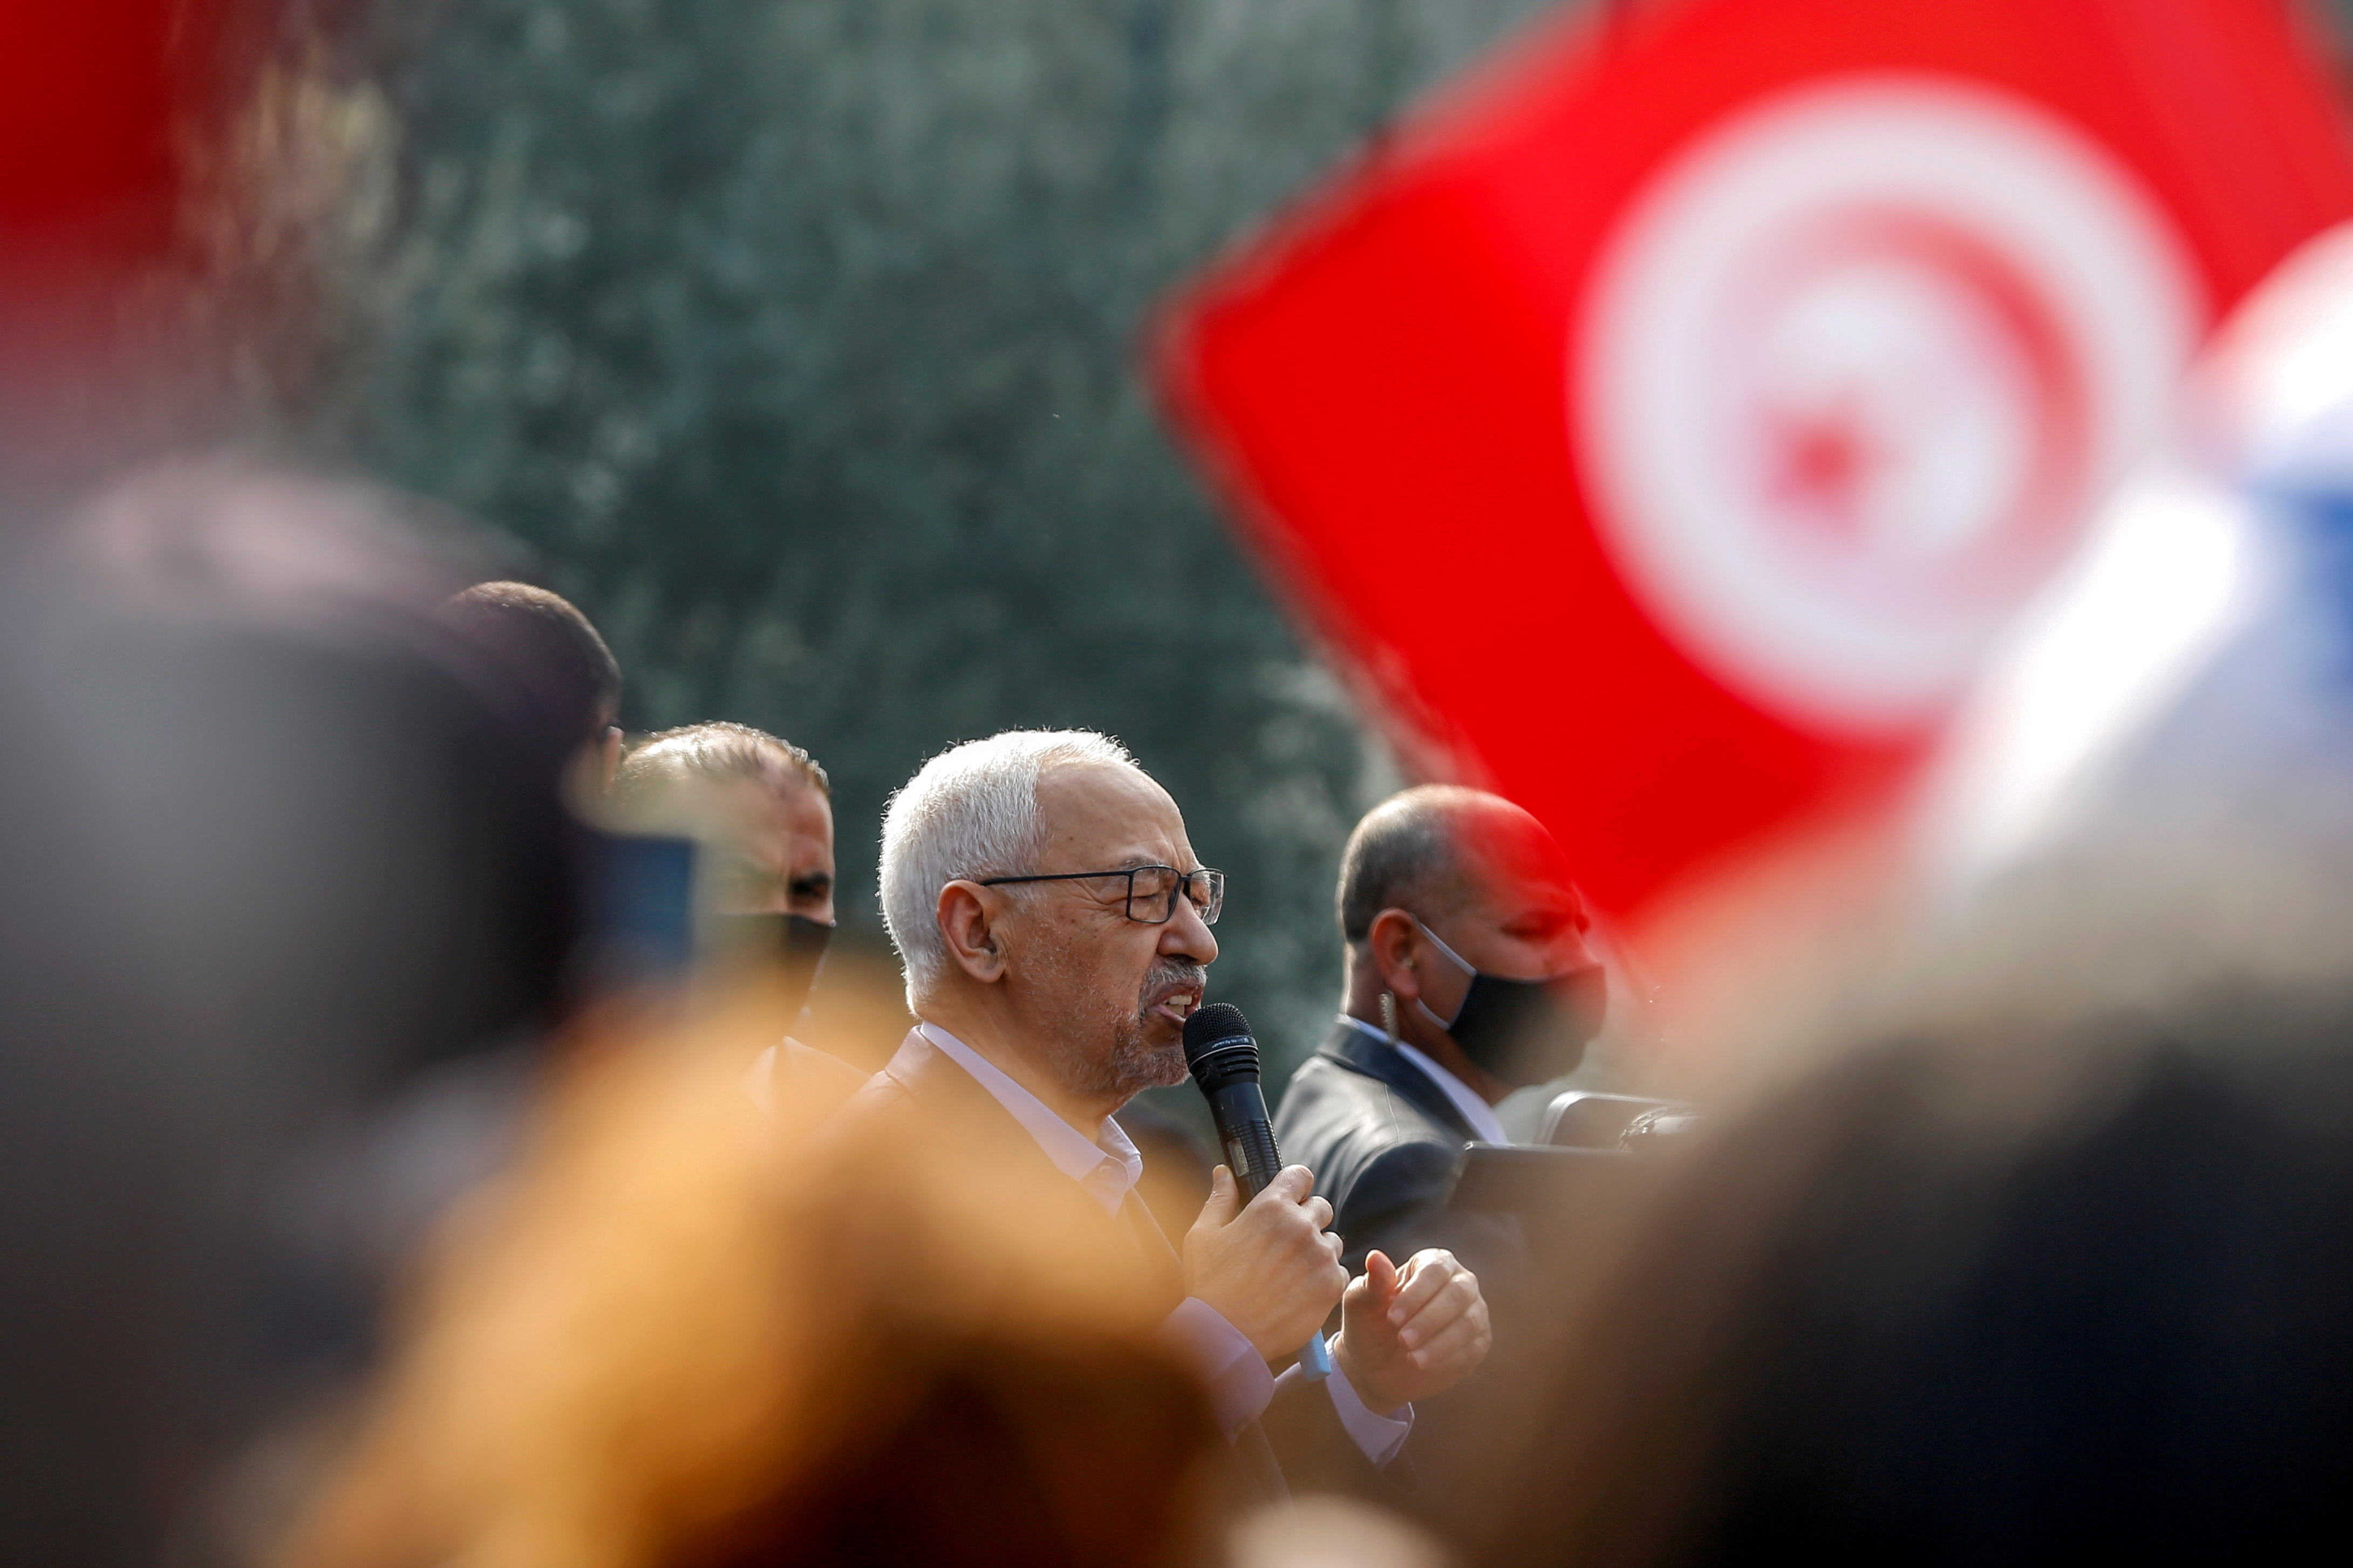 Parliament Speaker Rached Ghannouchi, head of the moderate Islamist Ennahda, speaks to supporters during a rally in opposition to President Kais Saied, in Tunis, Tunisia February 27, 2021. REUTERS/Zoubeir Souissi/File Photo